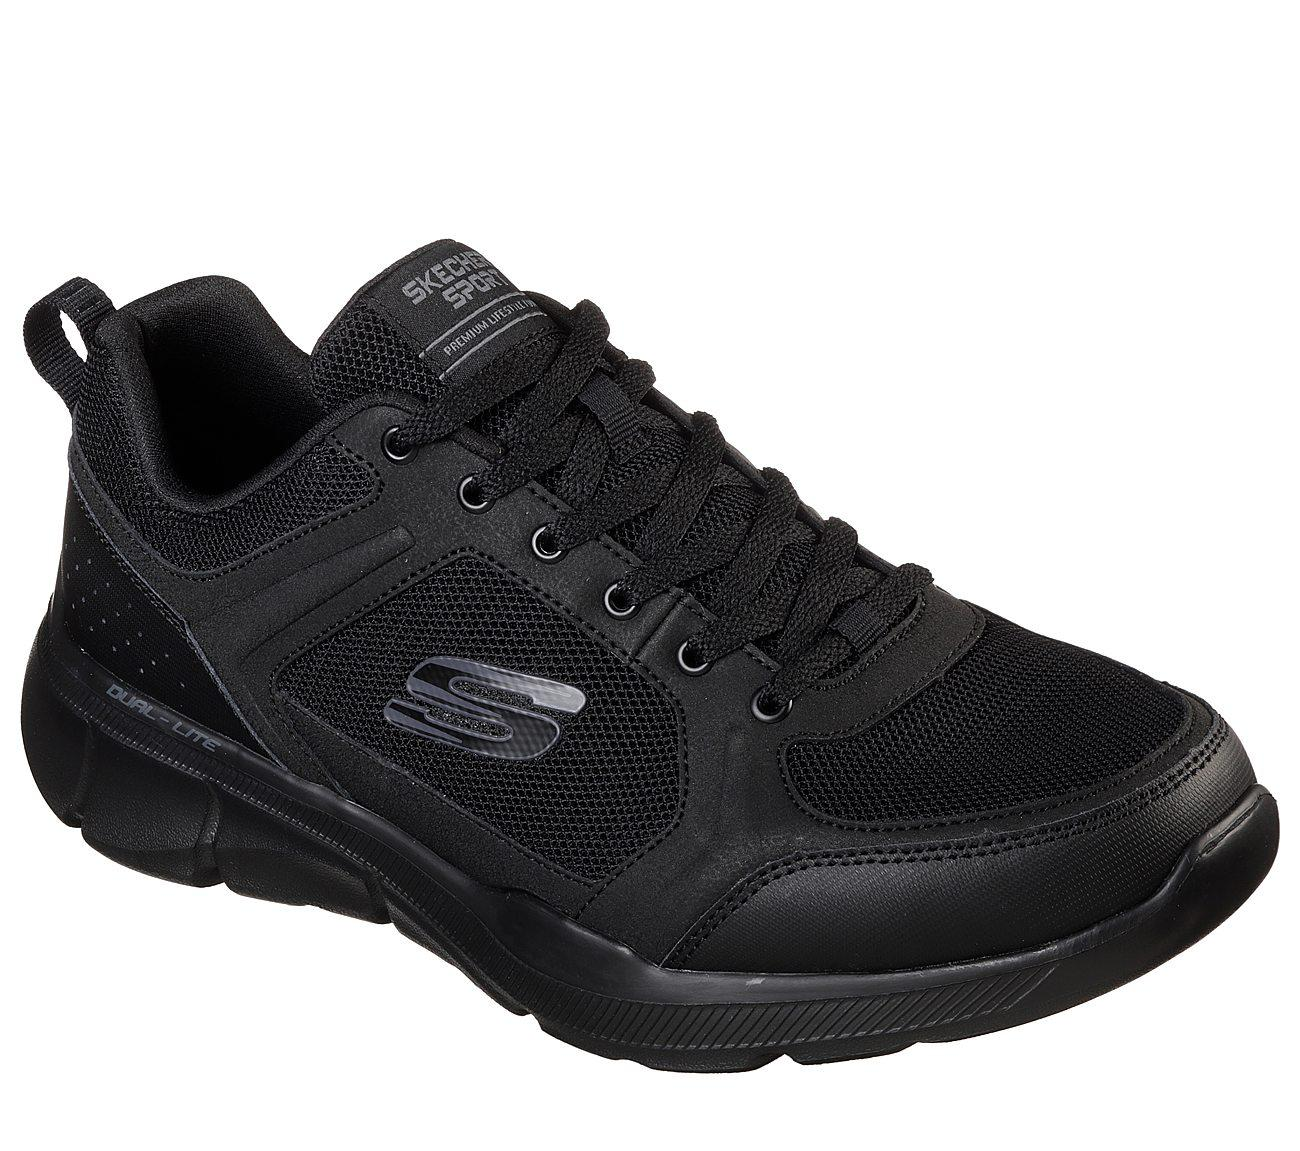 Skechers - Relaxed Fit  Equalizer 3.0 - Deciment Sepatu Sneakers Pria -  Hitam b7127725a8